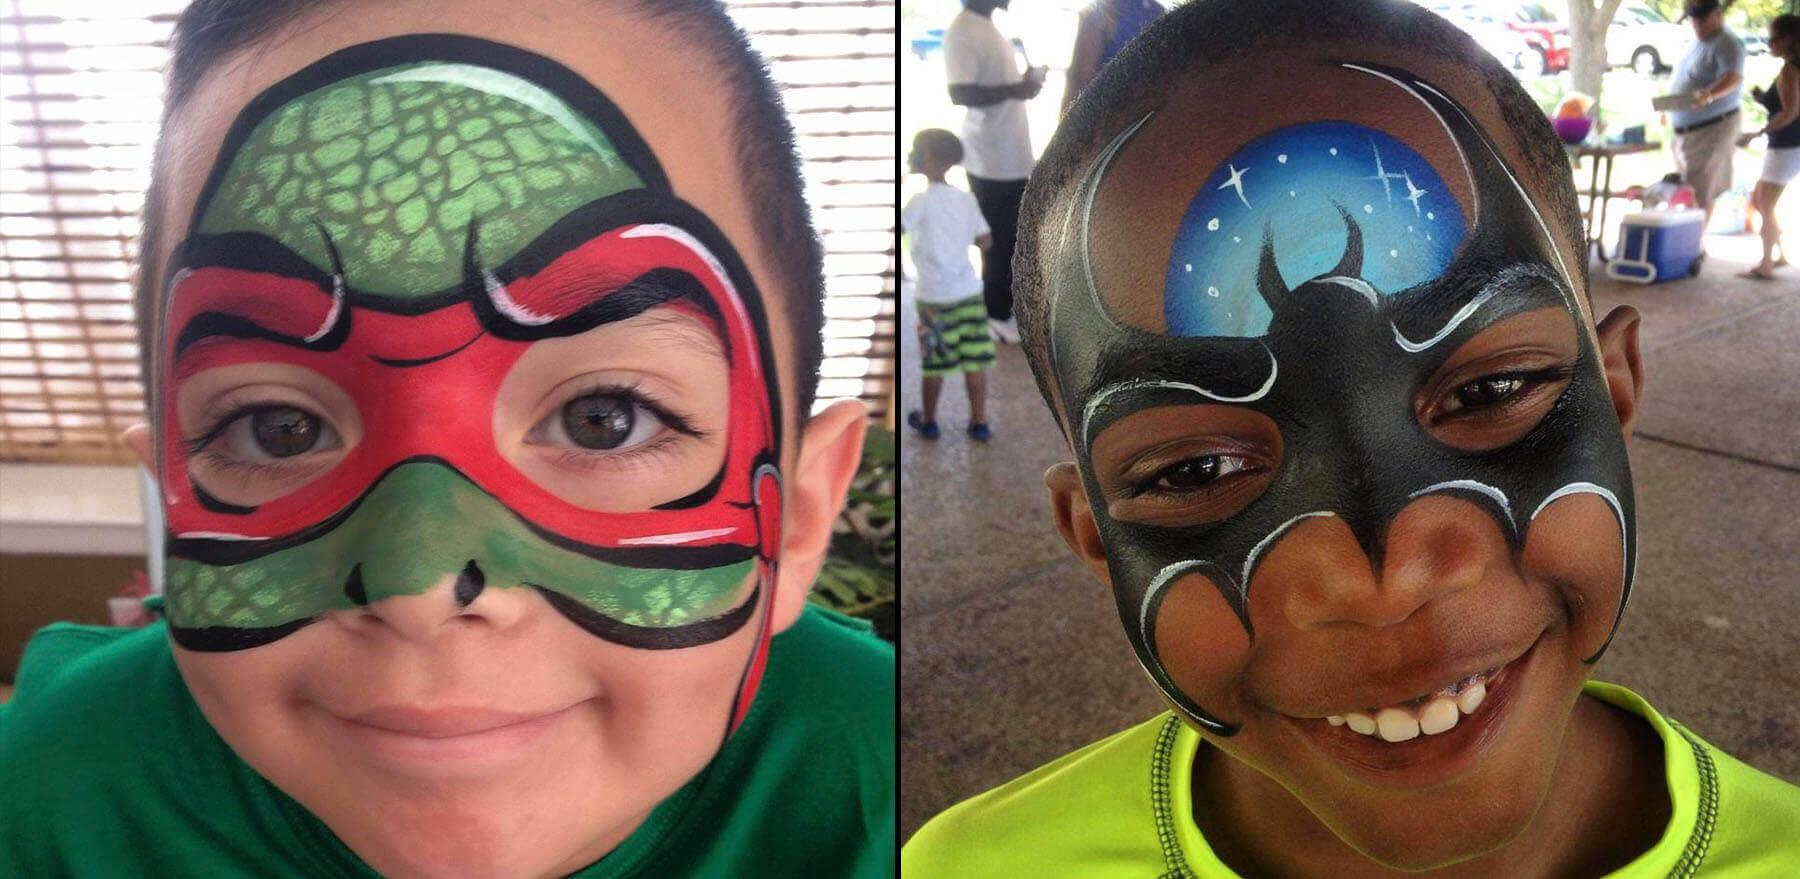 altamonte-springs-face-painting